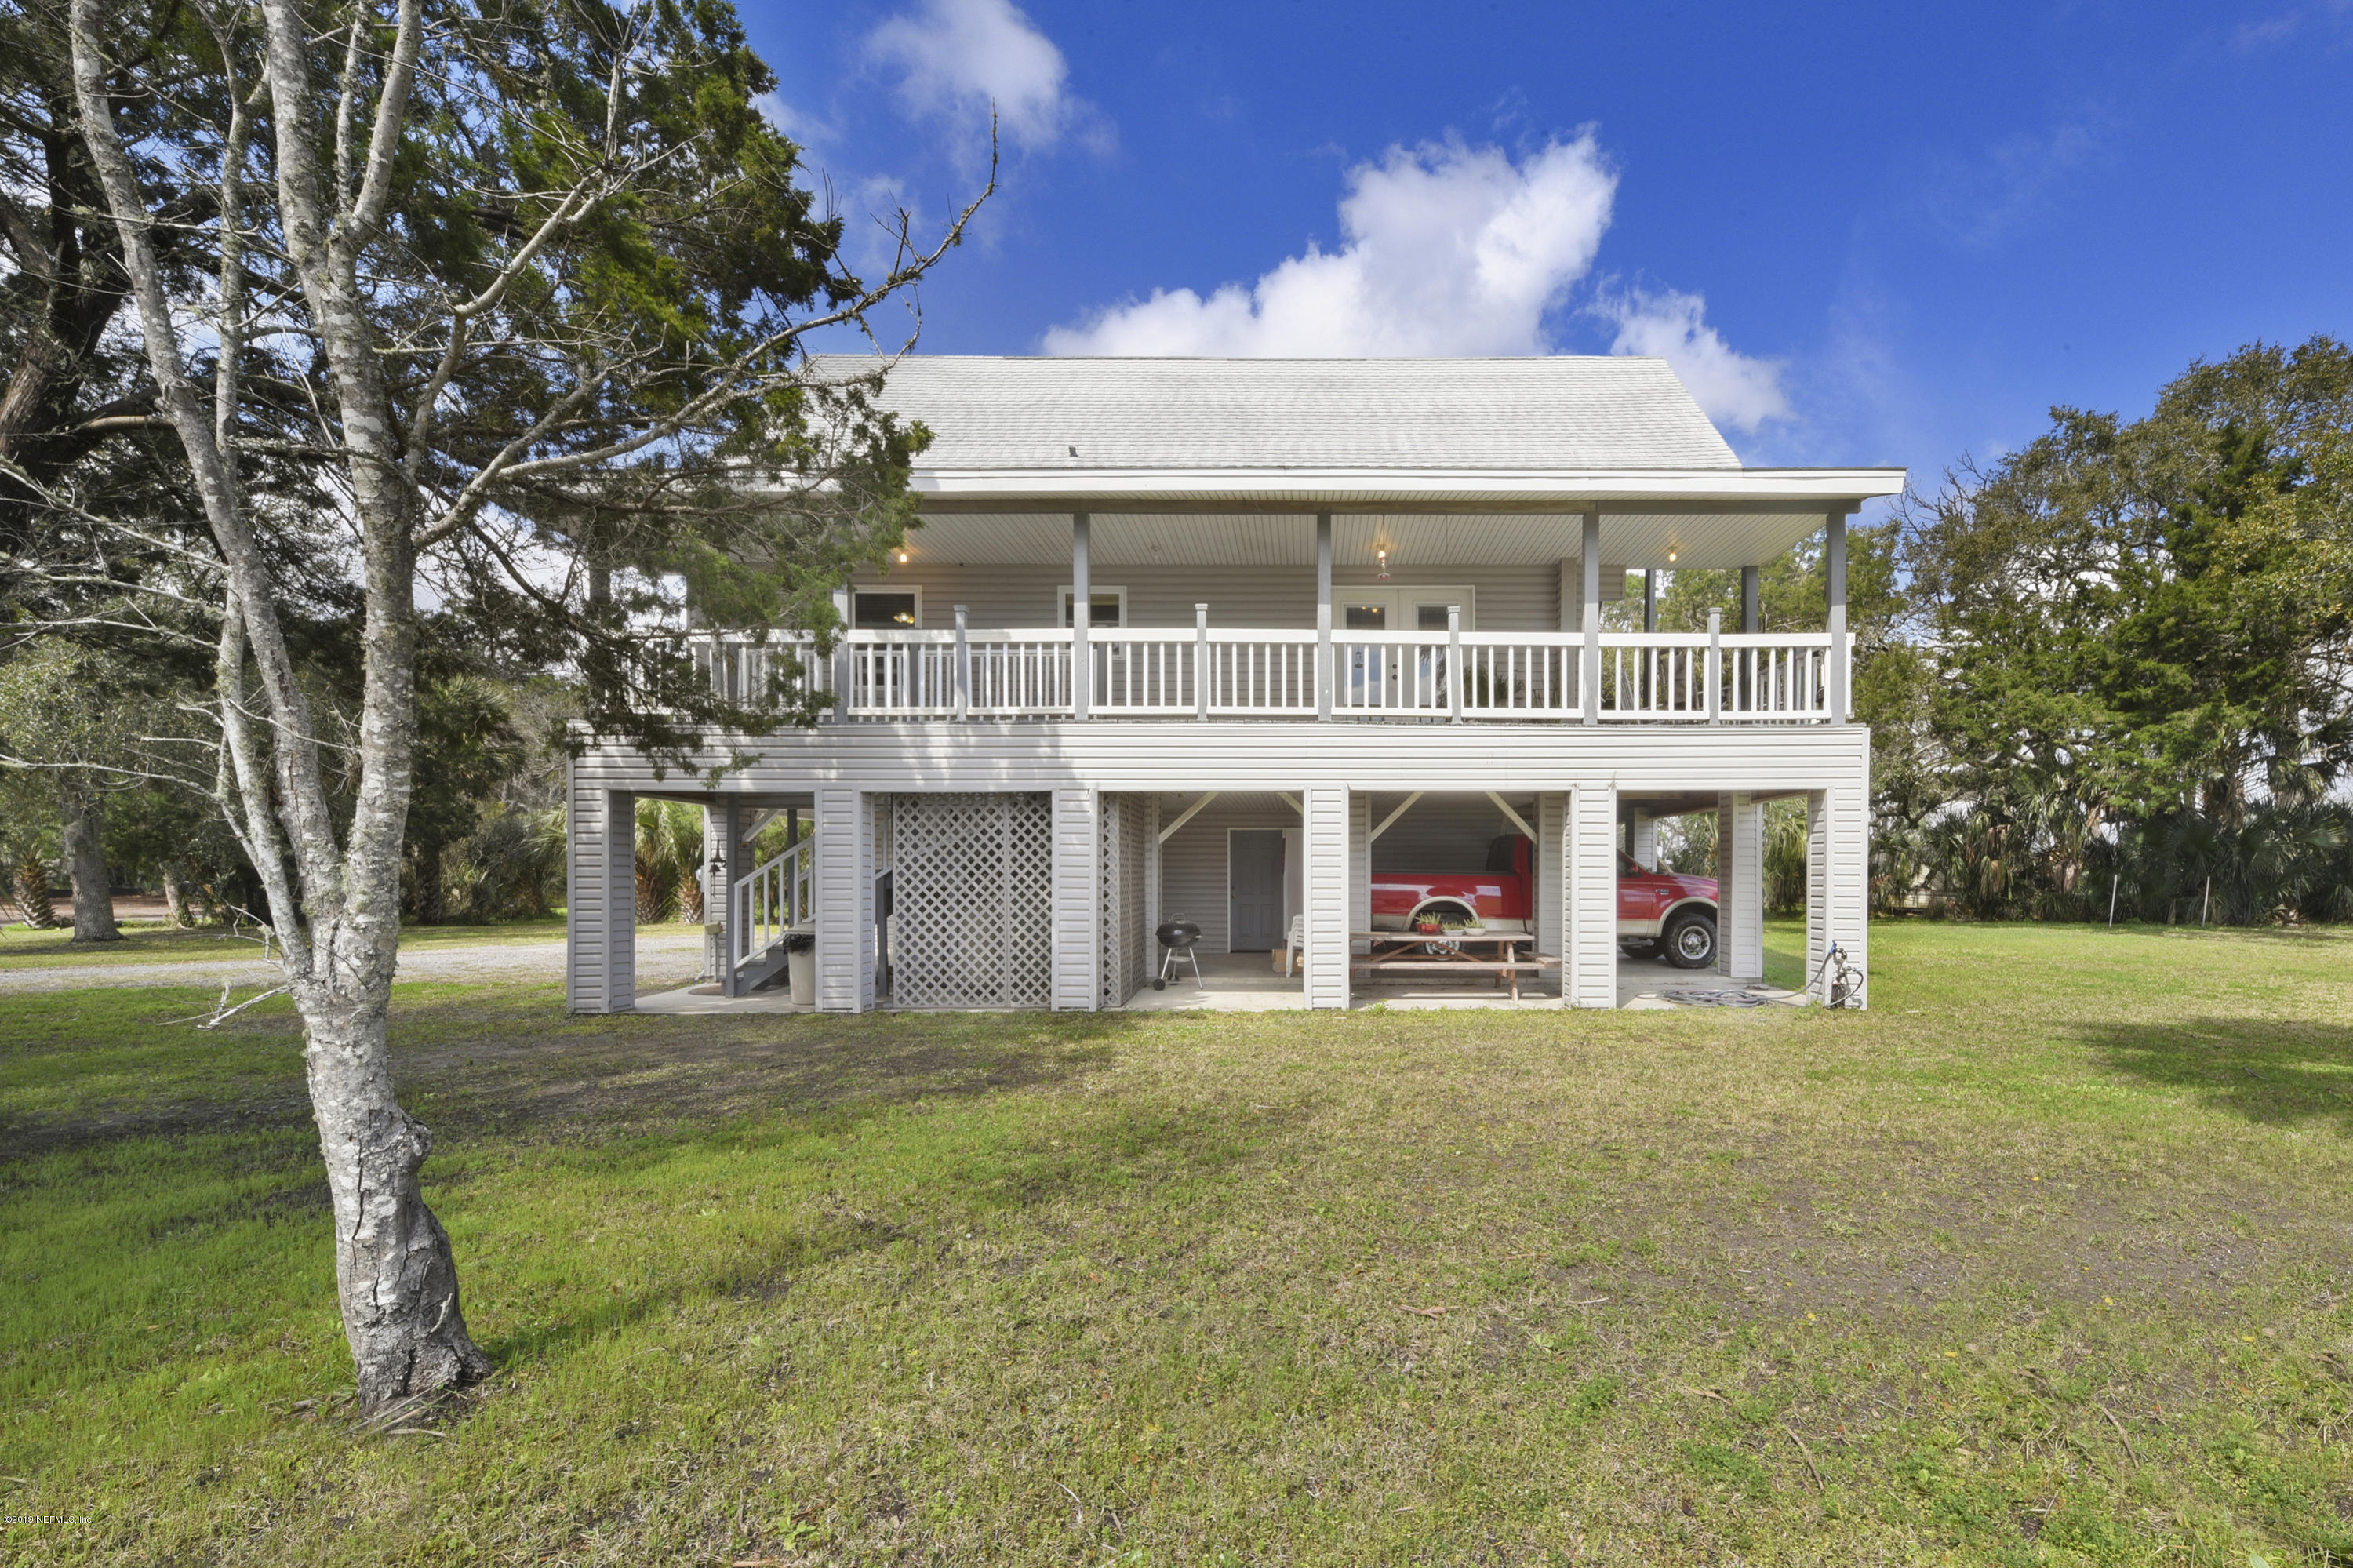 16301 WATERVILLE, JACKSONVILLE, FLORIDA 32226, 2 Bedrooms Bedrooms, ,3 BathroomsBathrooms,Residential - single family,For sale,WATERVILLE,982444